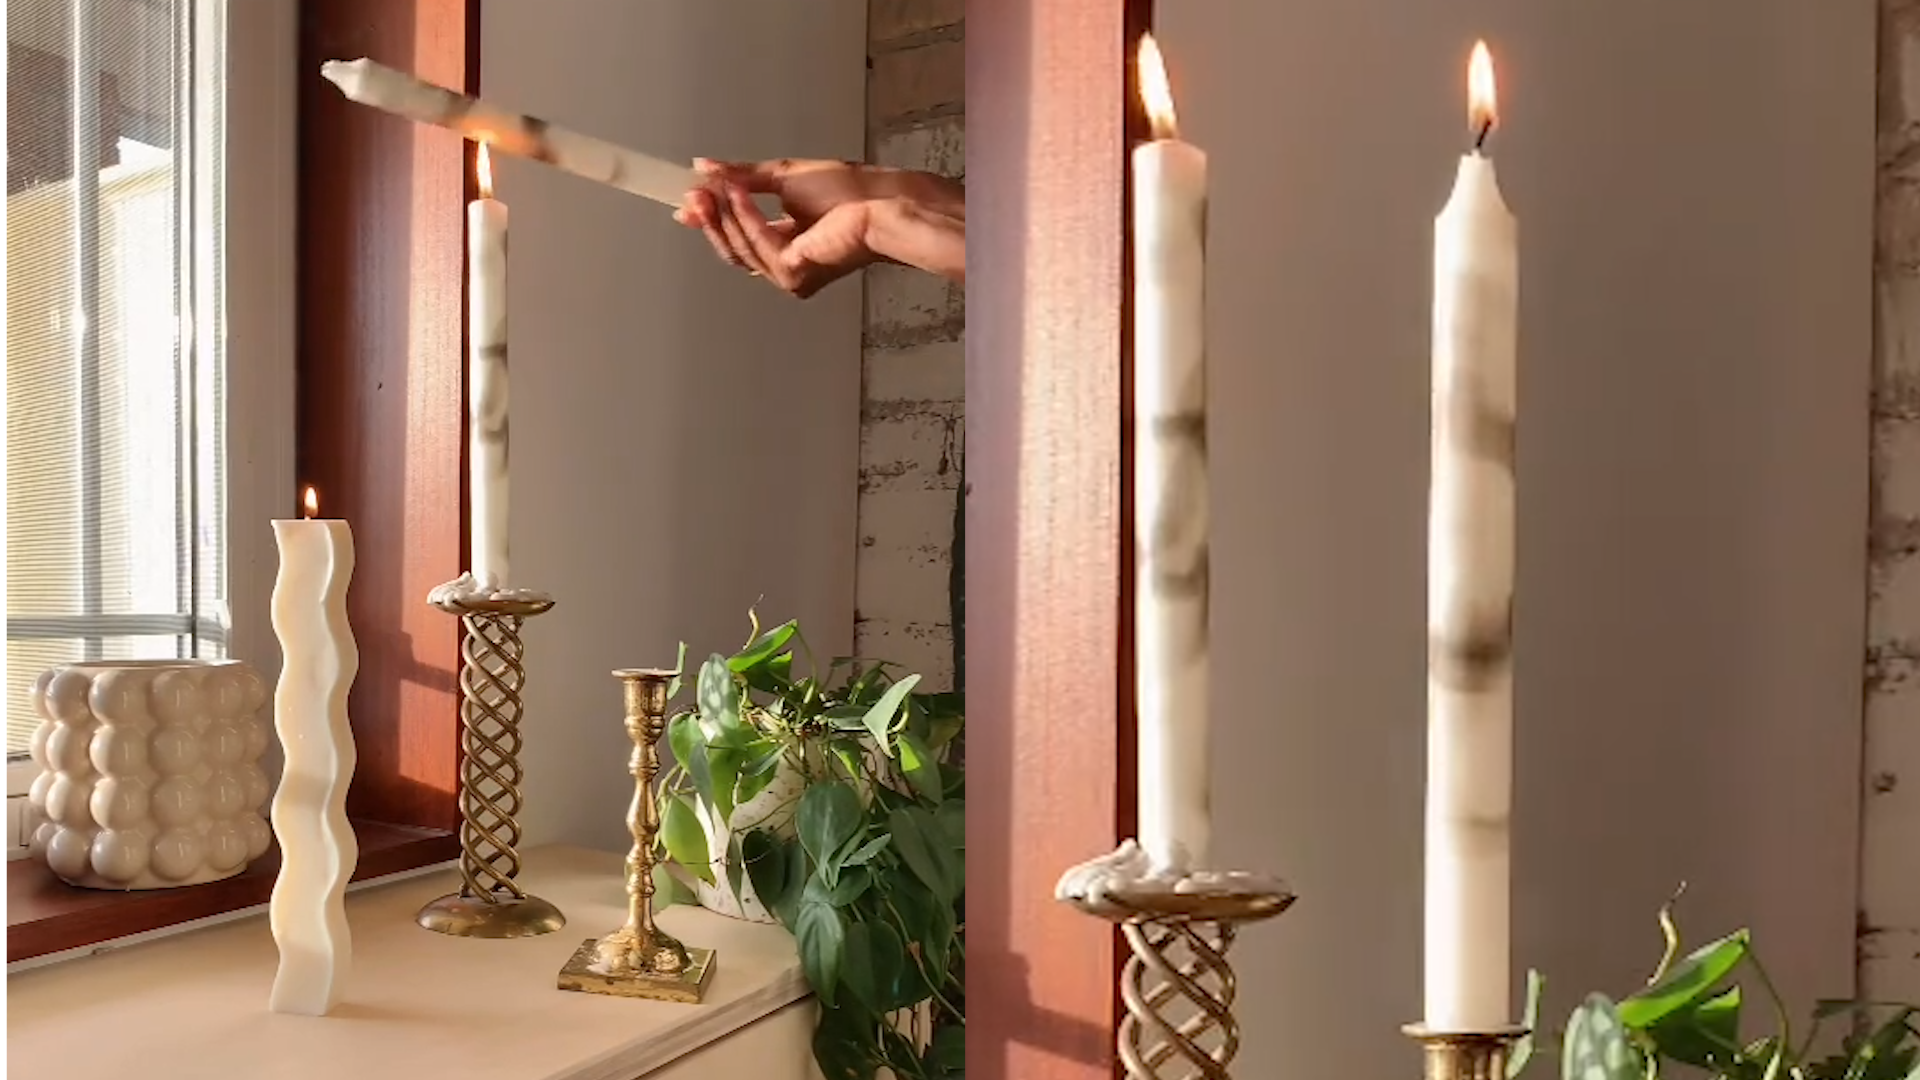 How to make marble-look candles